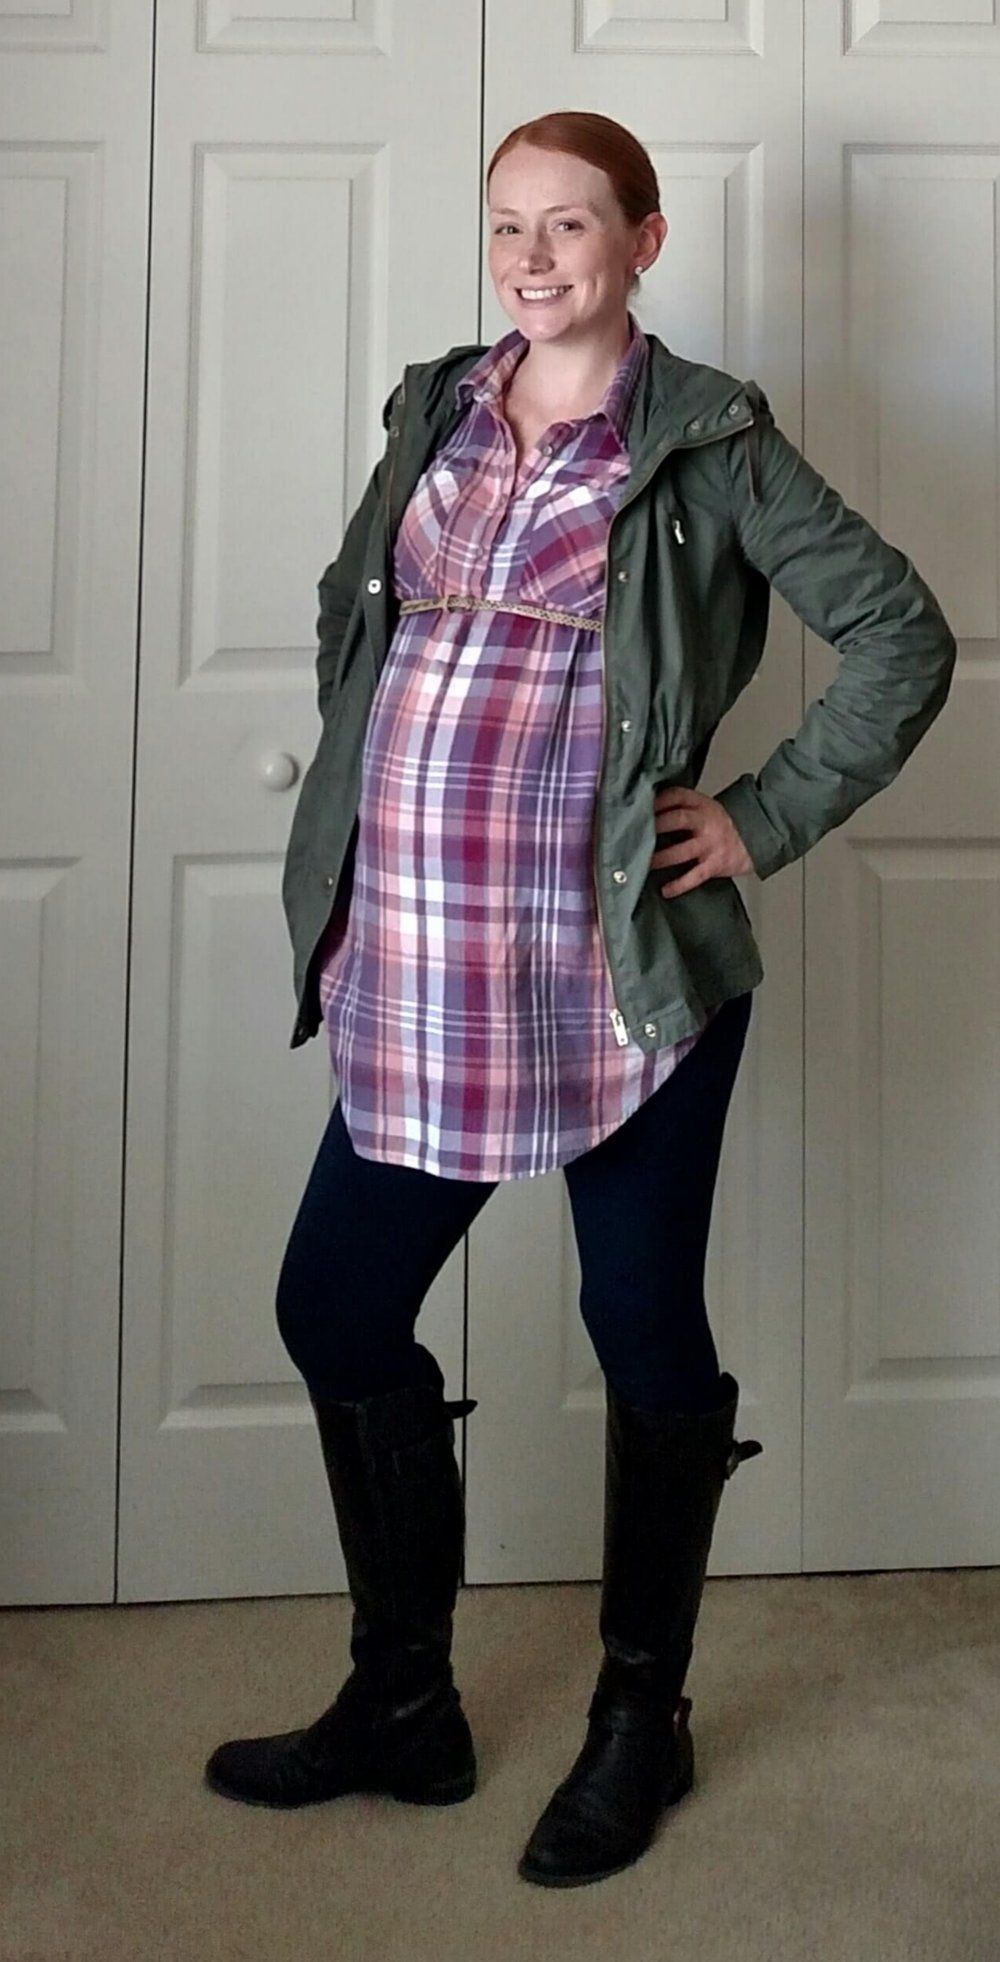 Plaid Button Up + Leggings + Riding Boots + Utility Jacket - Having a hard time styling your #leggings Moms just like you modeling how to wear leggings - non-frumpy, mom friendly, cute, chic fashion!  #mom #fashion #outfits #tips # ideas #easy #clothes #style